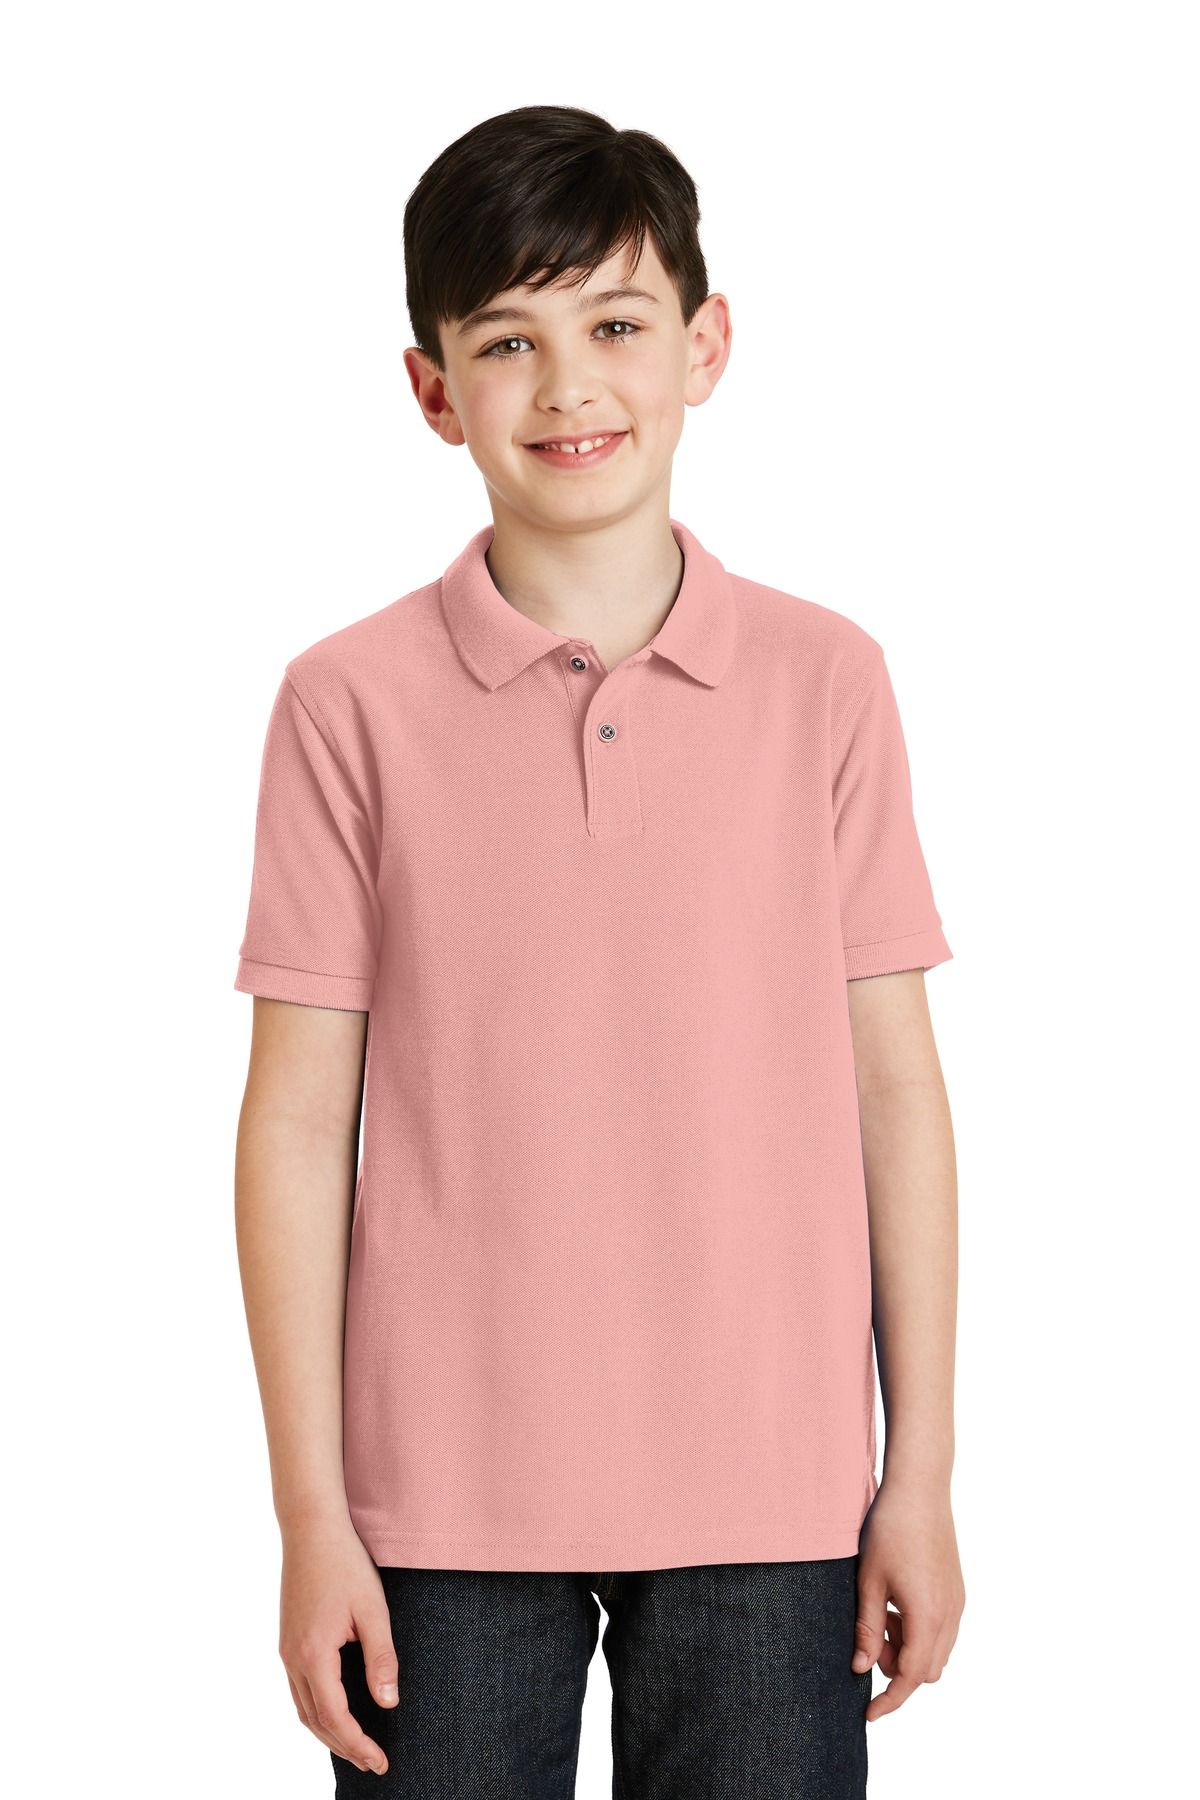 Port Authority ®  Youth Silk Touch™ Polo.  Y500 - Light Pink